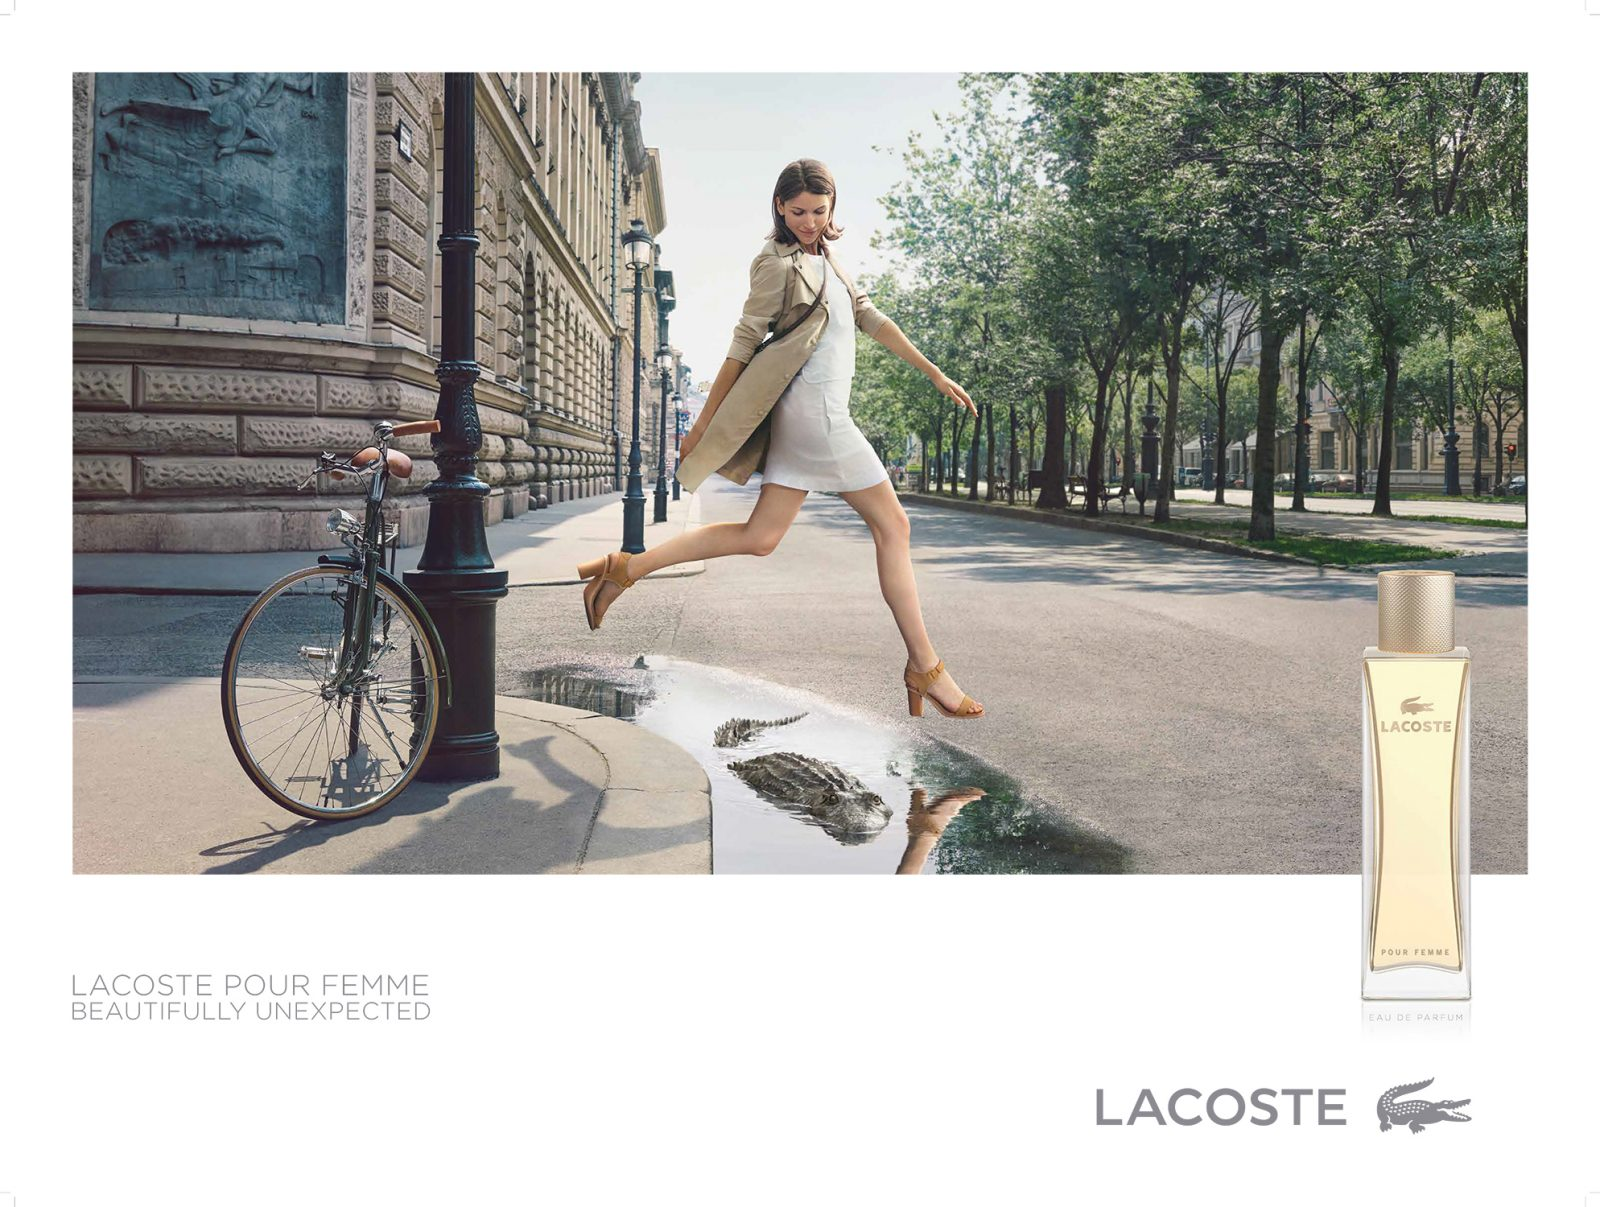 lacoste-beautifully-unexpected.jpg